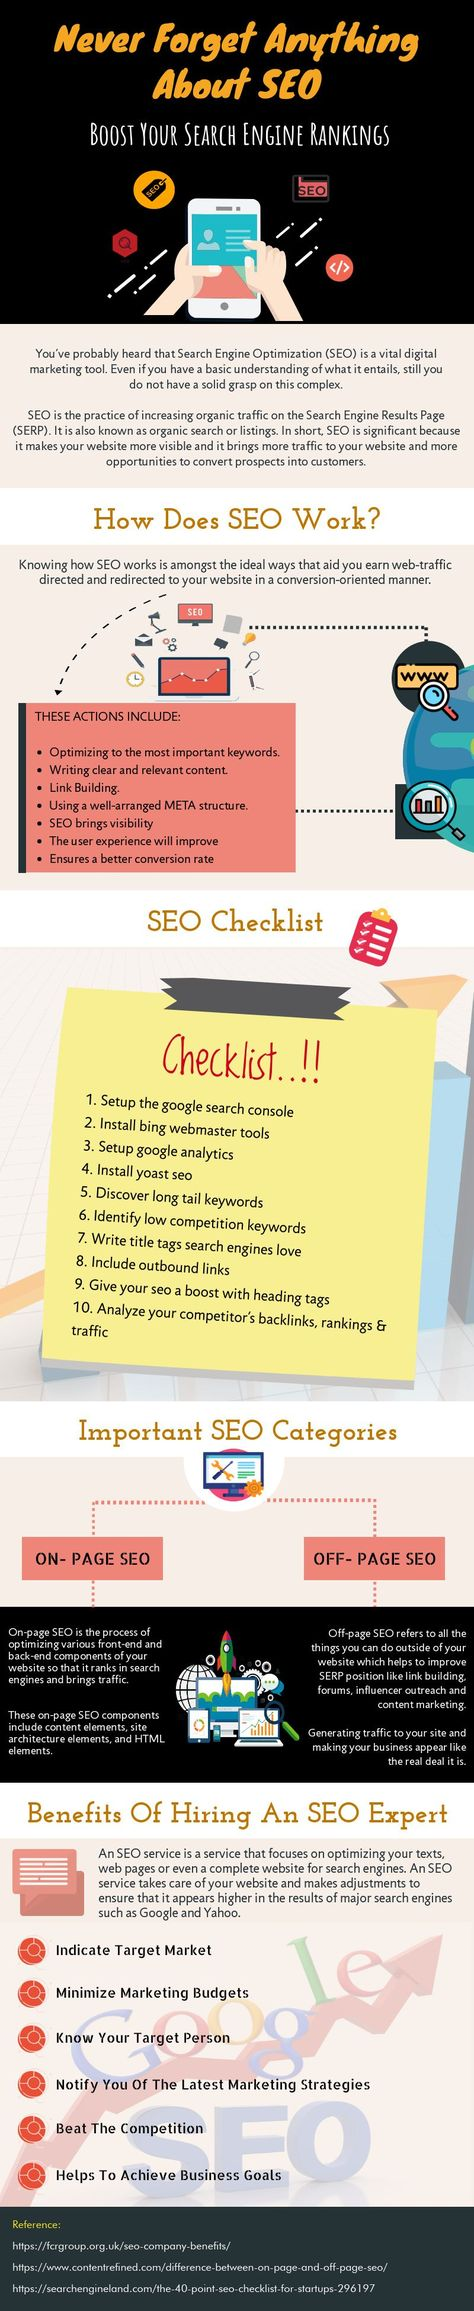 SEO Strategies for 2019